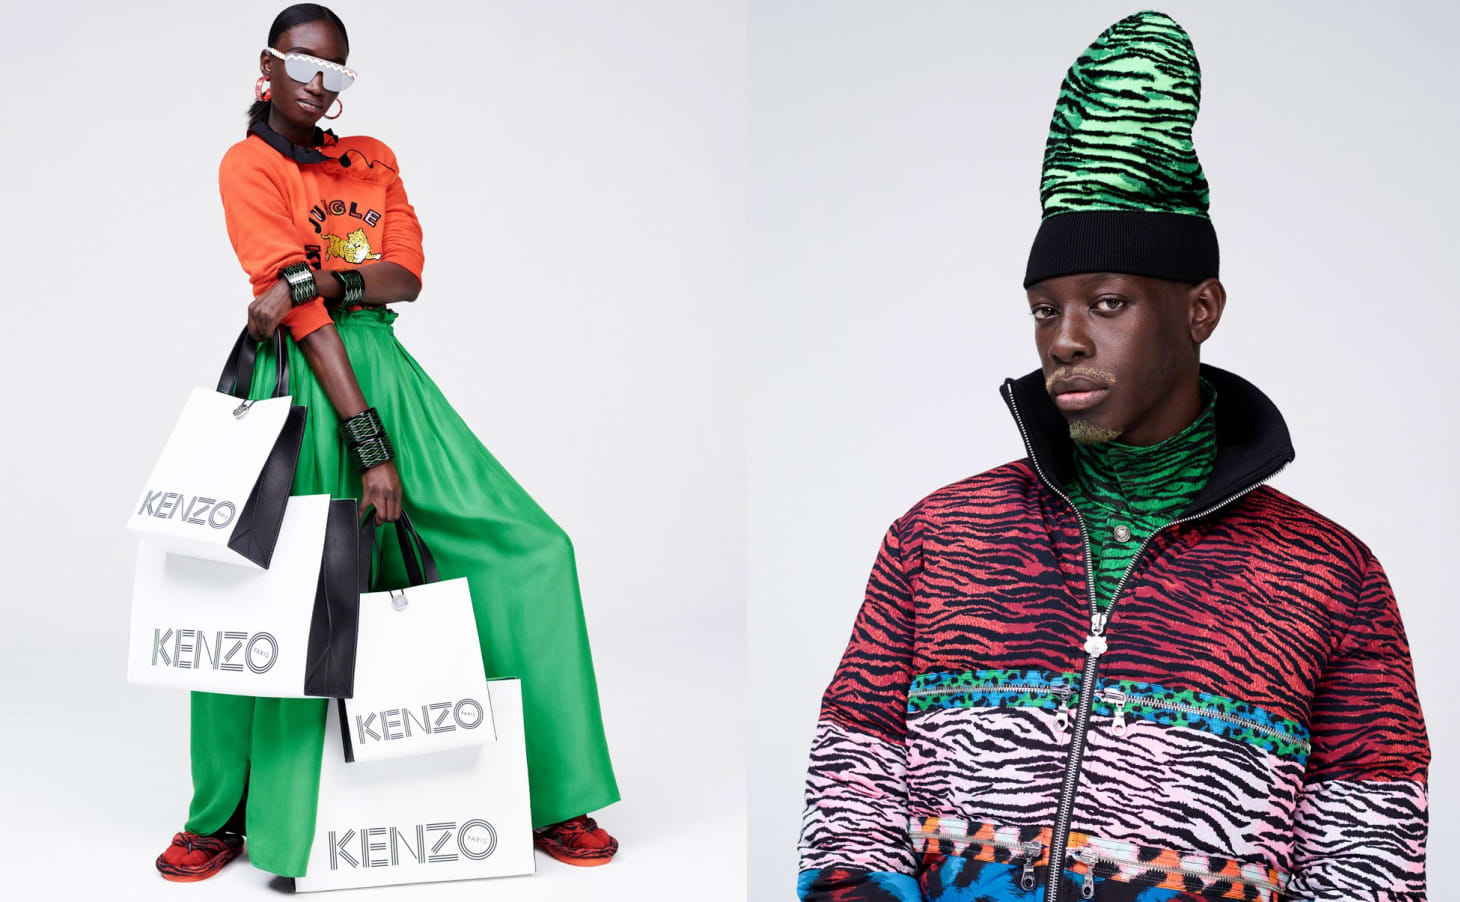 17c9235c94f1 5 KENZO x H&M Looks, In Order of Wearability | Apartment Therapy